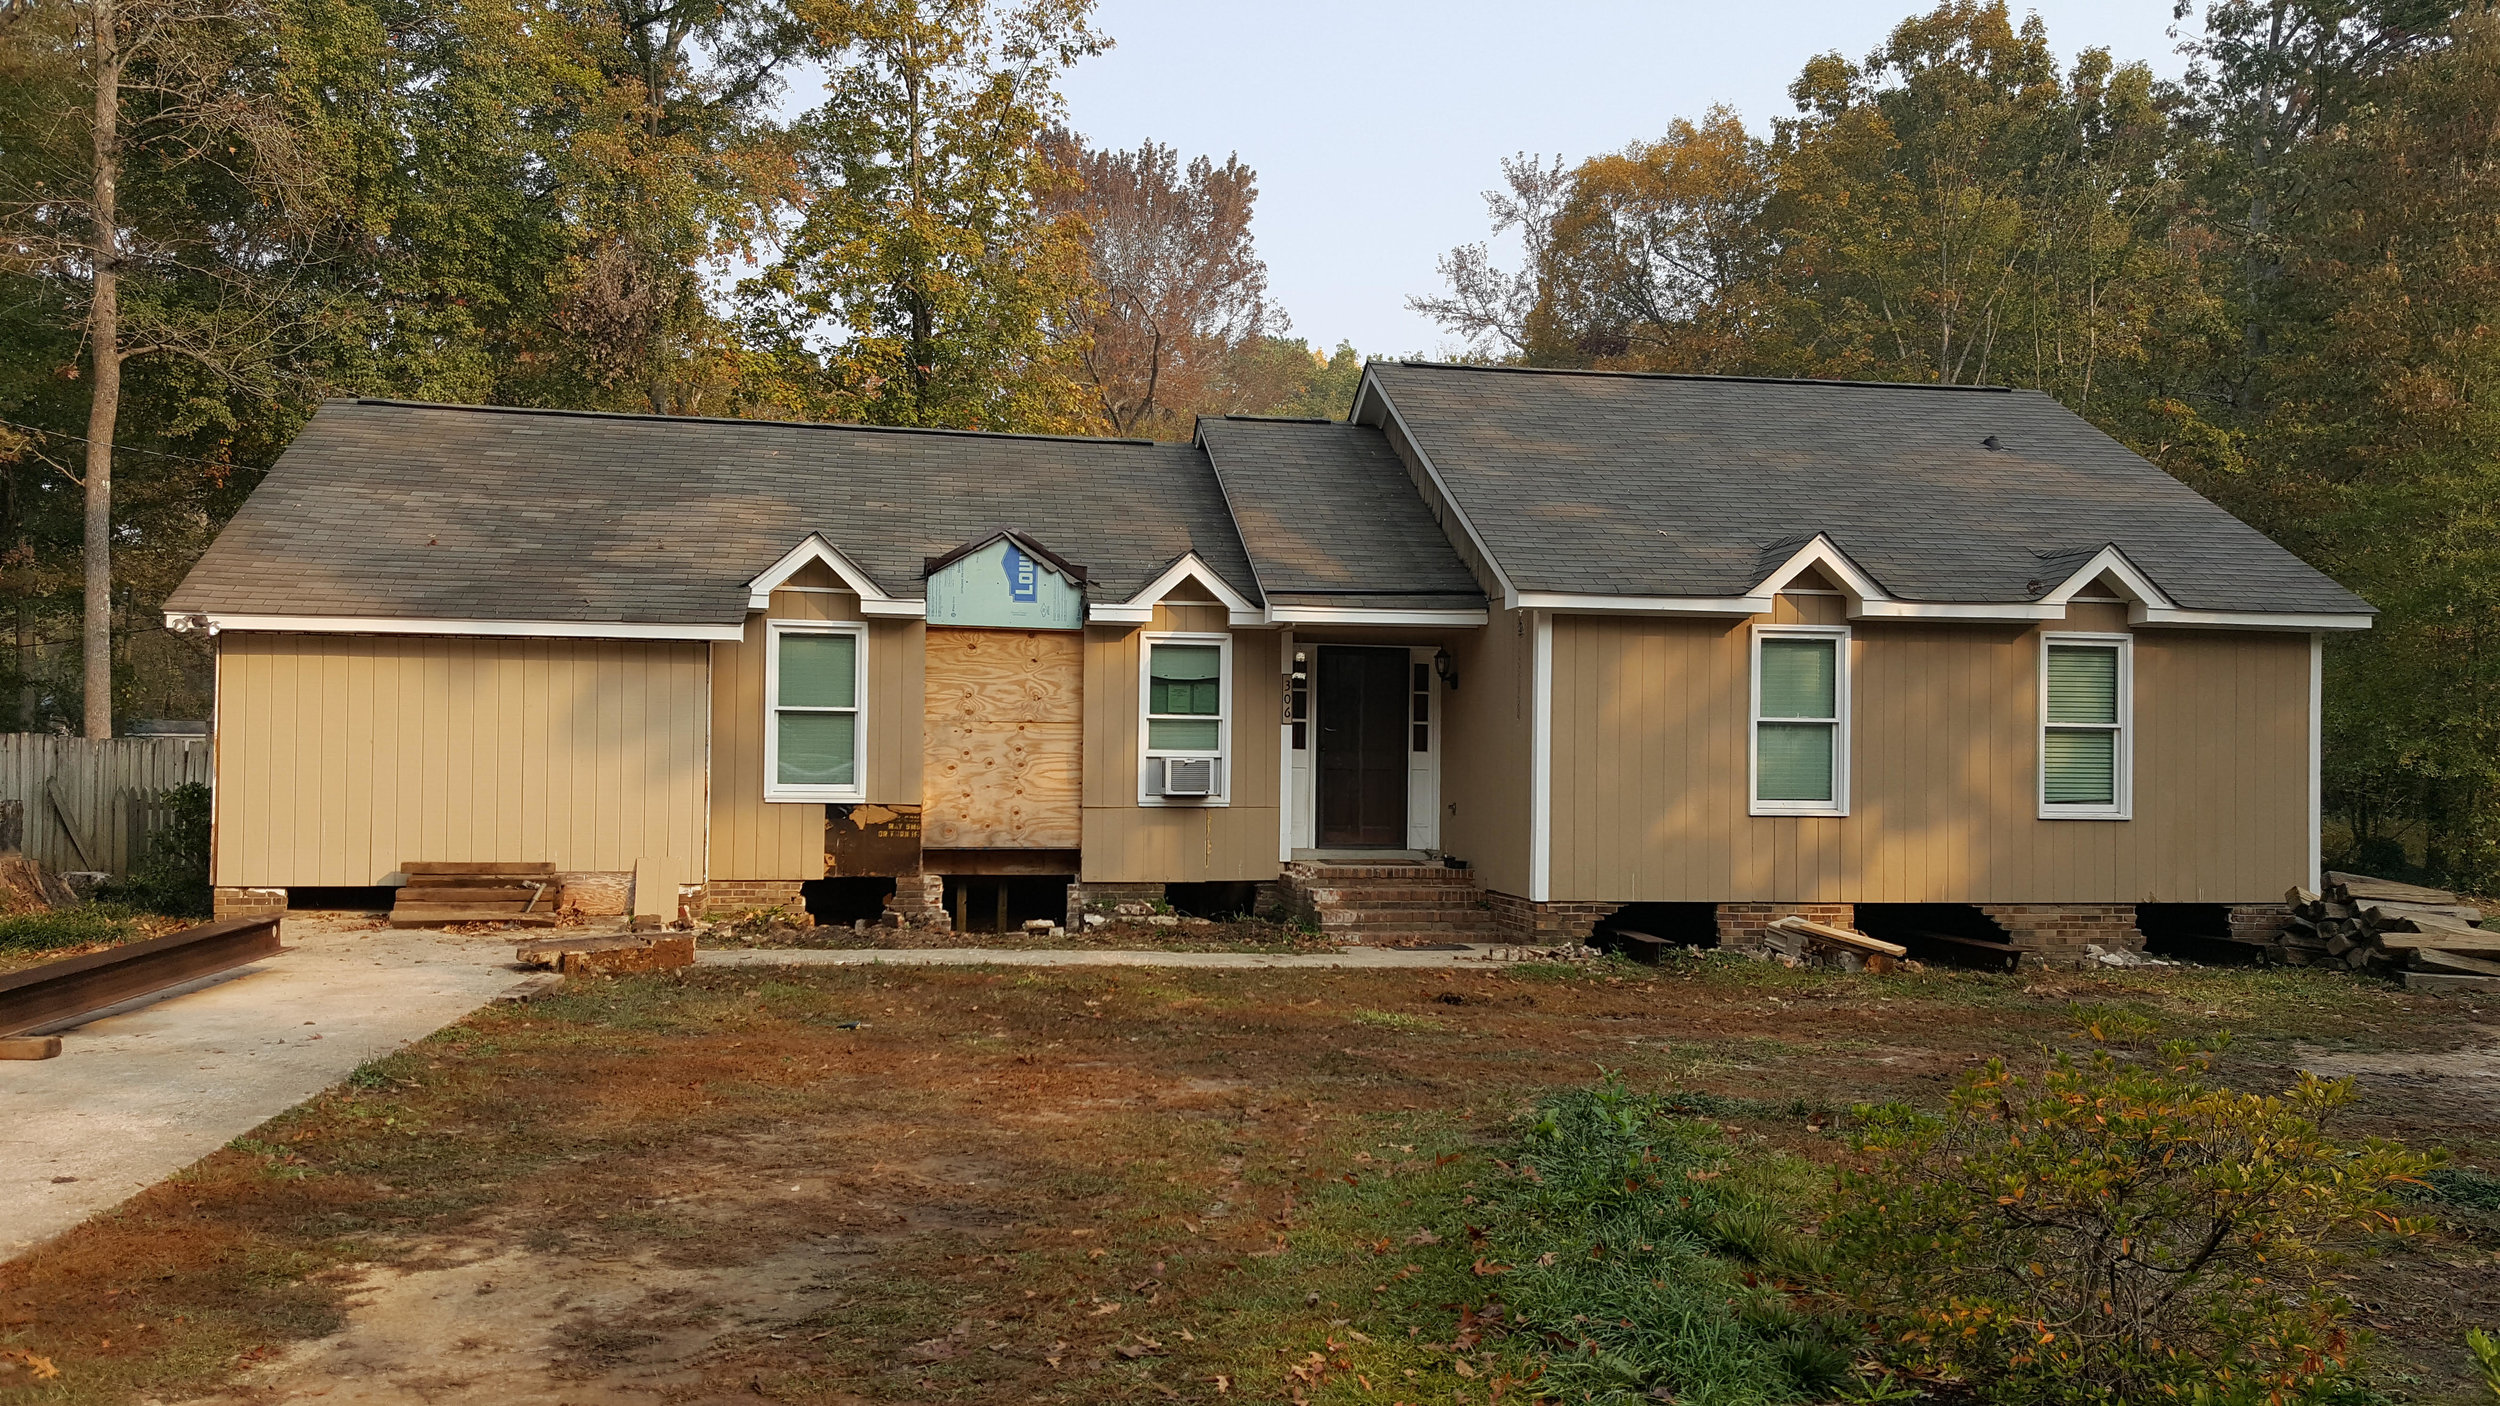 After the South Carolina flood, many homes like this one must be raised to meet new regulations.